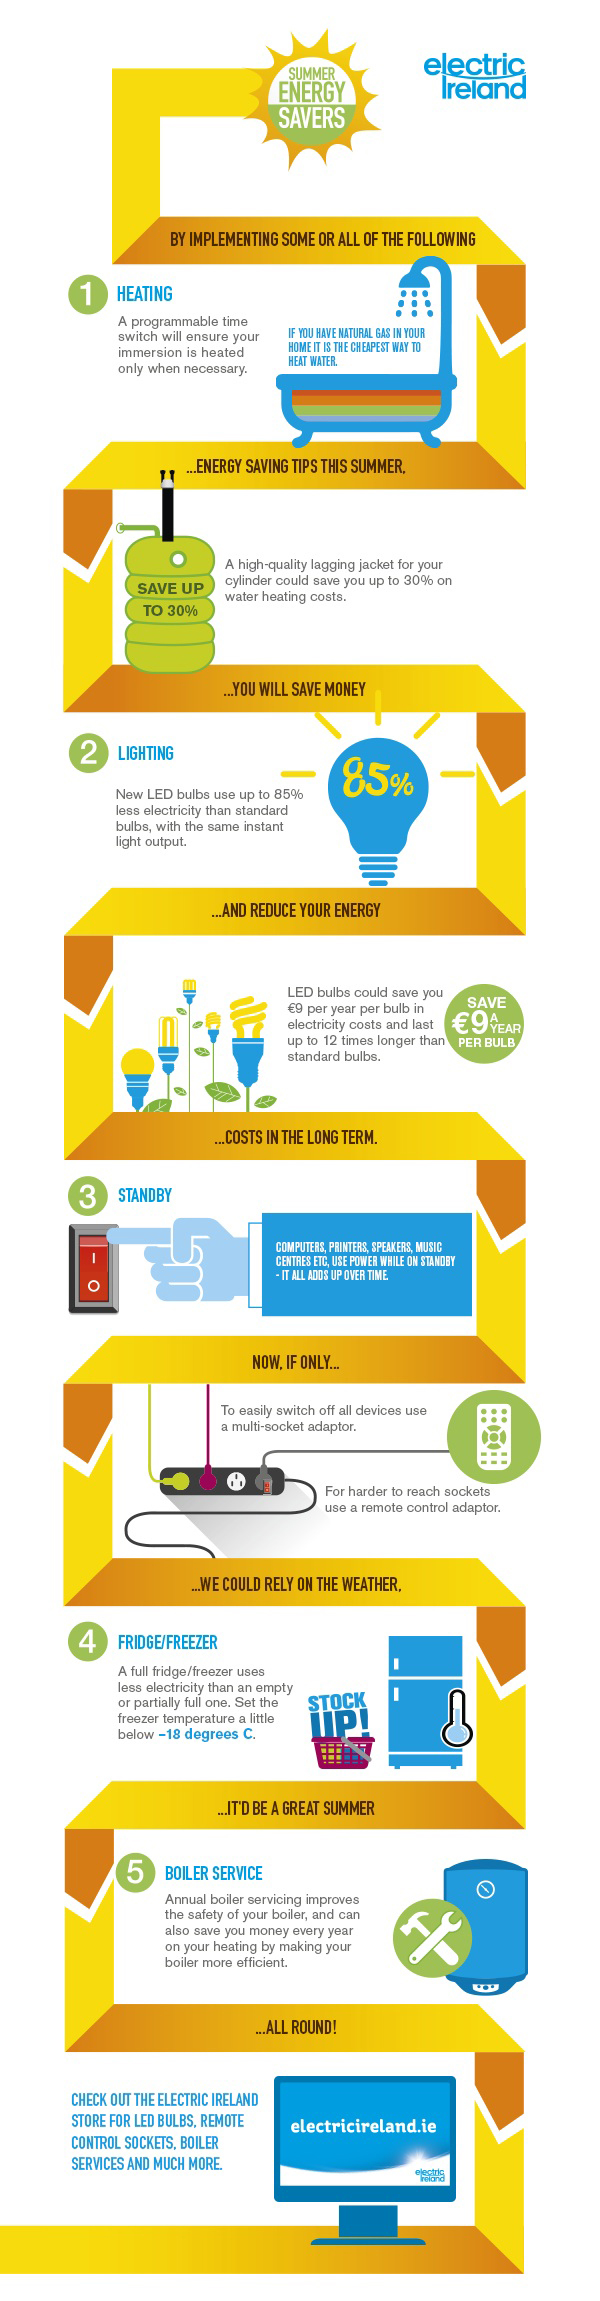 Summer Energy Saving Tips Infographic